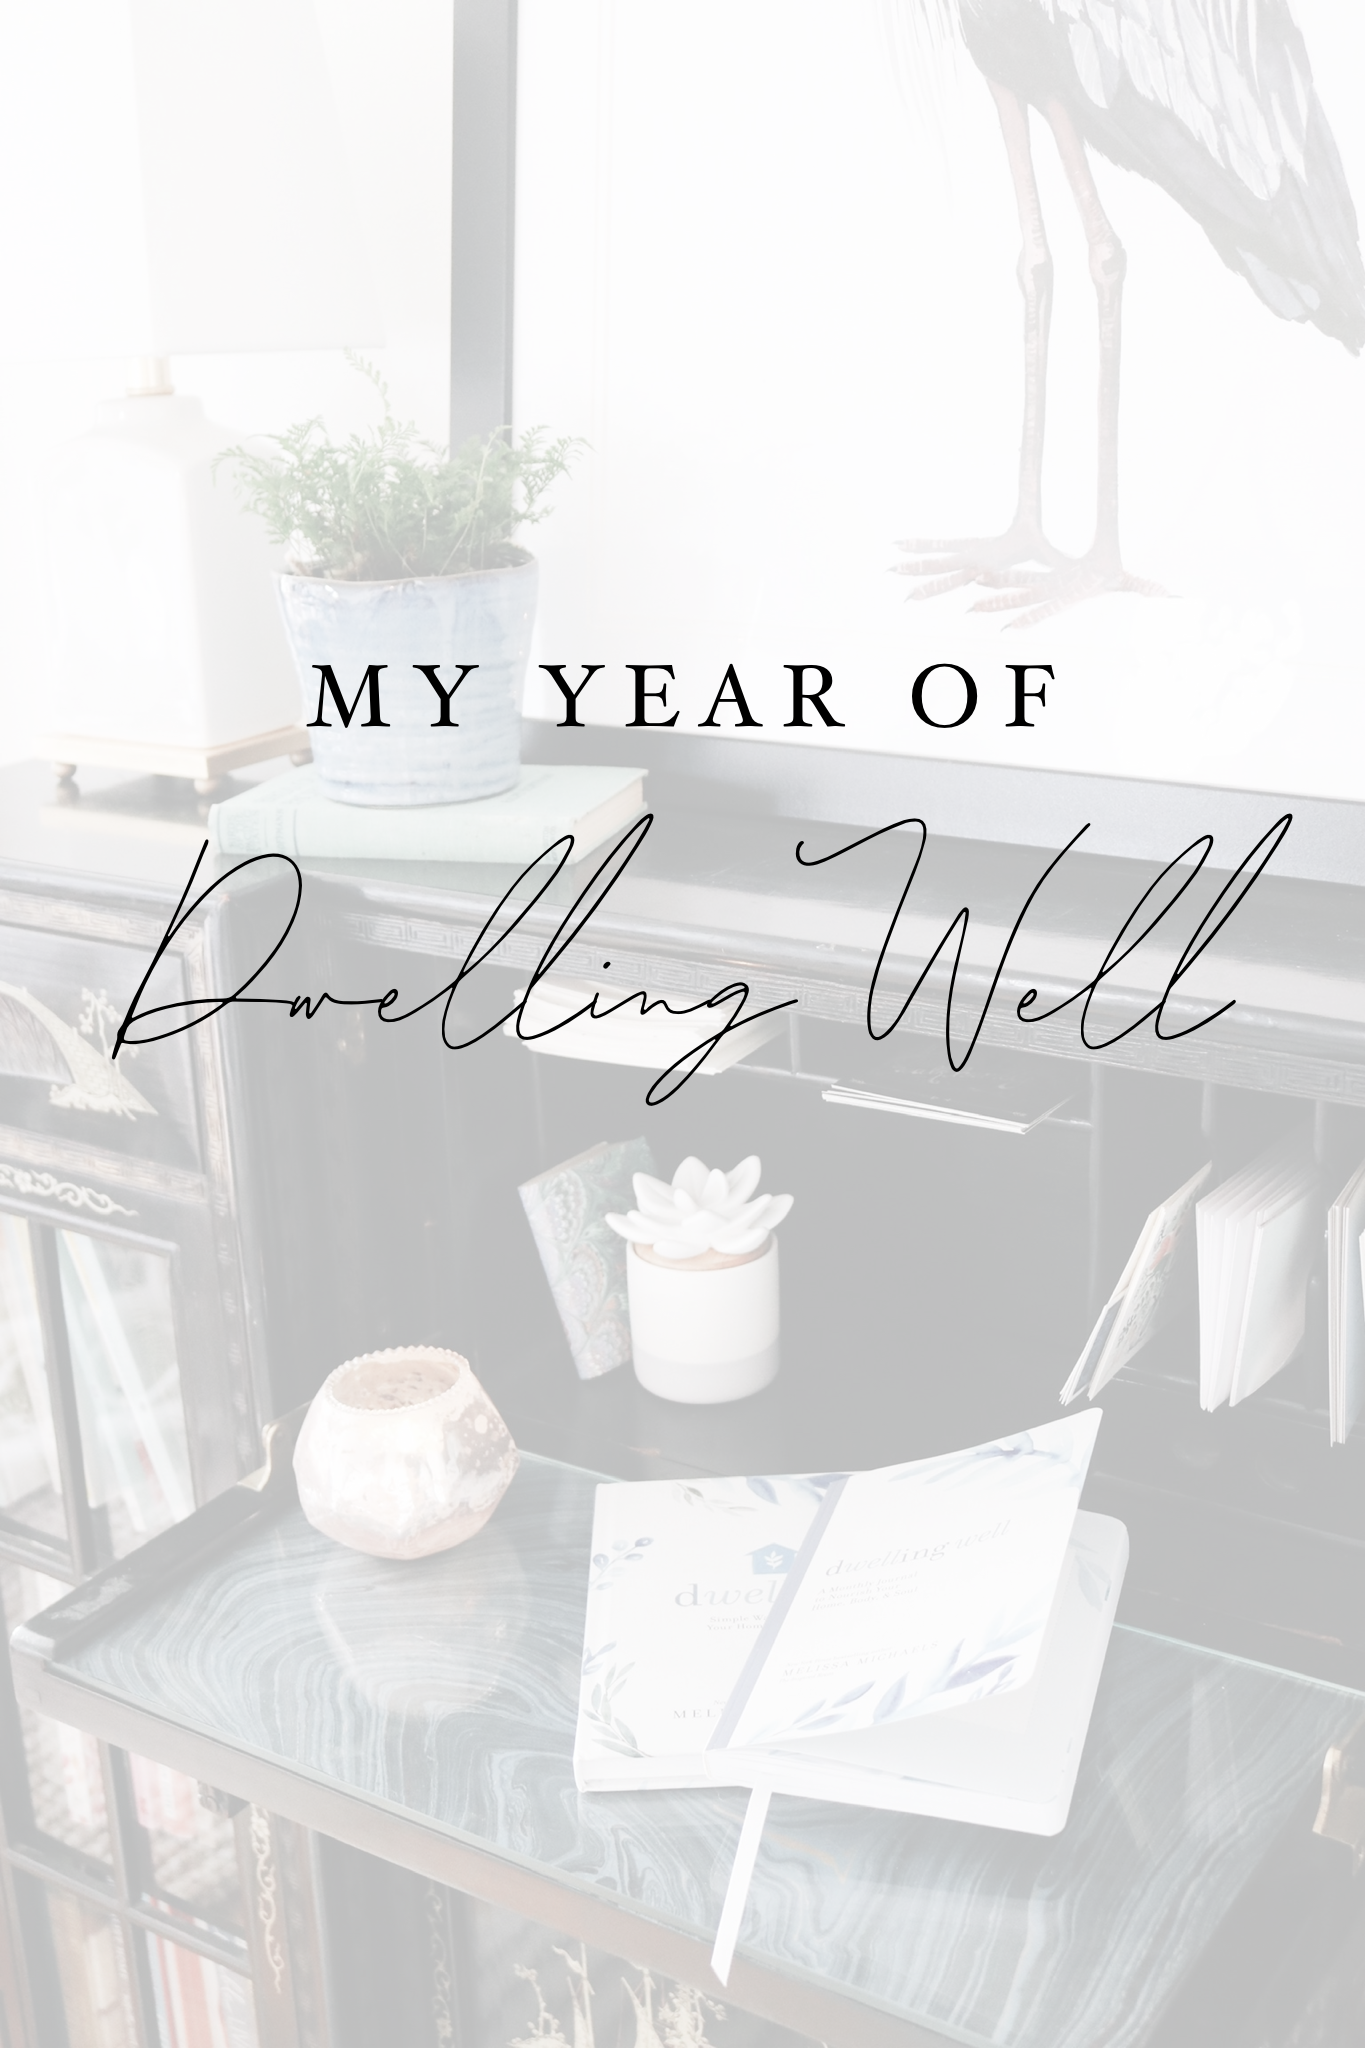 A Year Of Dwelling Well An Invitation For In